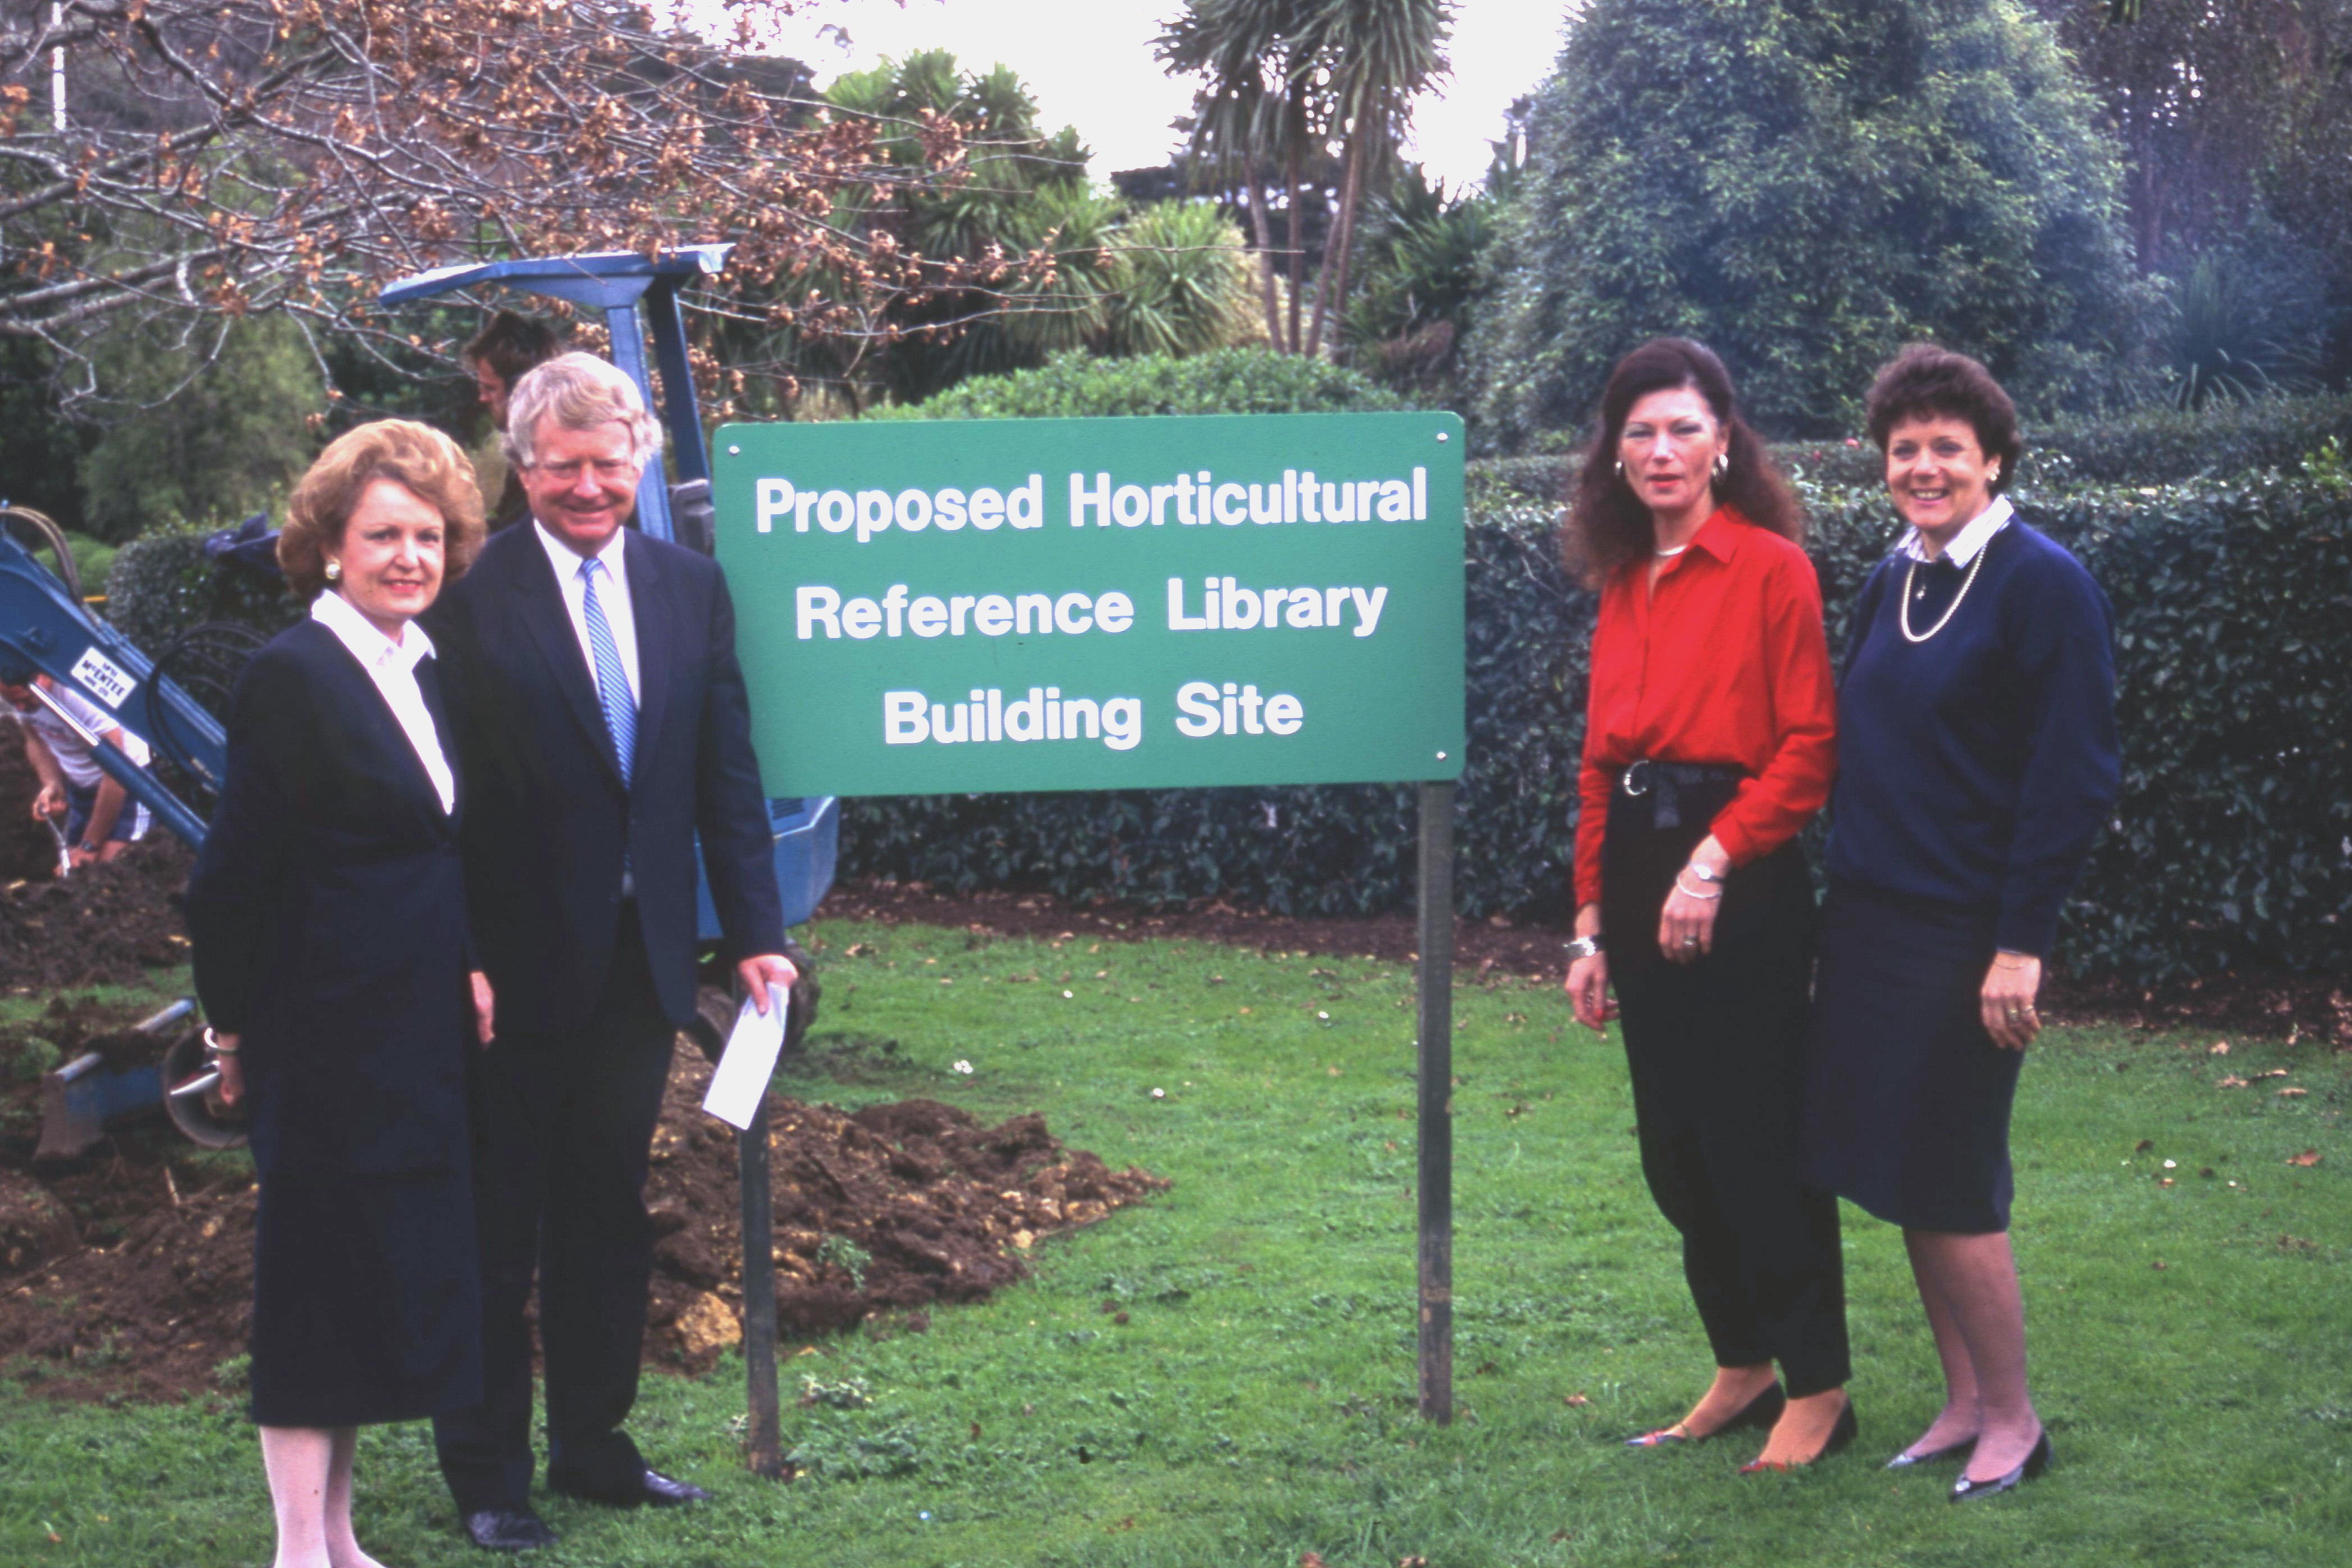 1991. Proposed site of Horticultural Reference Library.